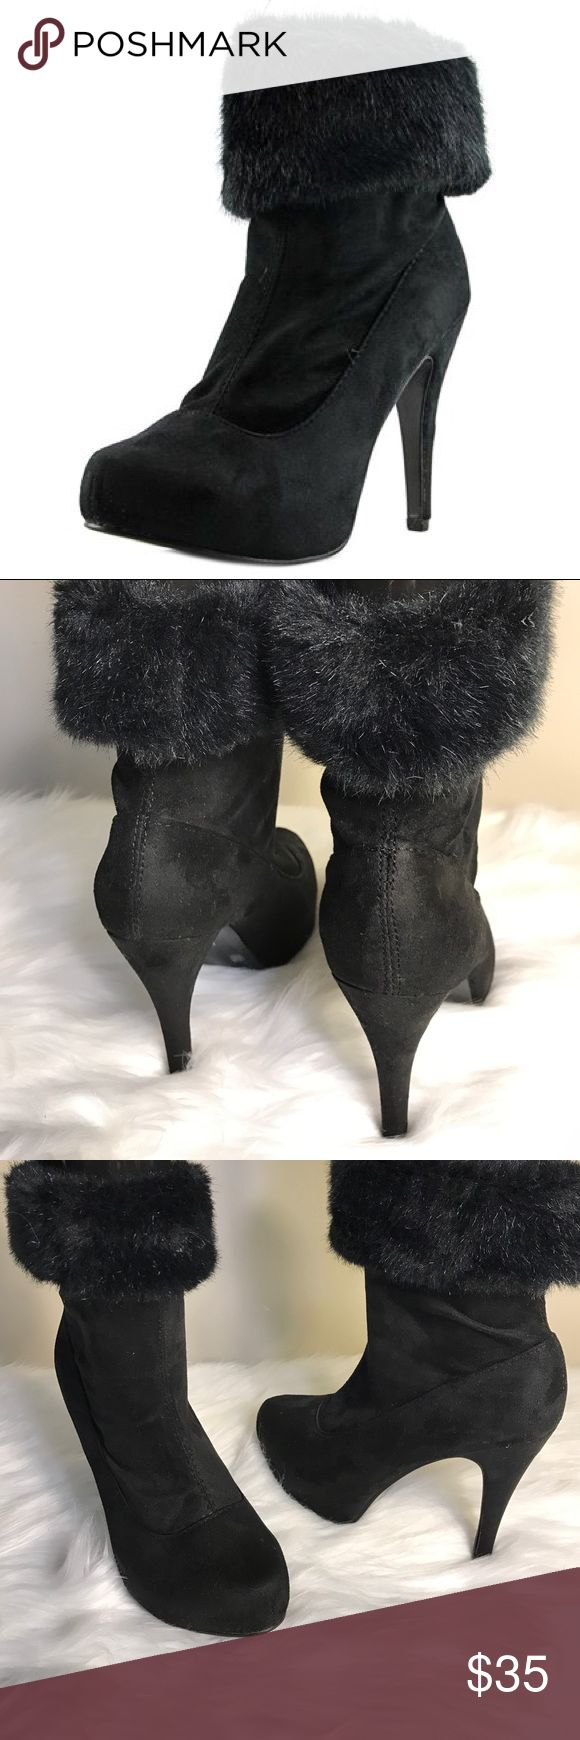 Chinese Laundry Tim Tok Suede Boots Used, in good condition. The Chinese Laundry Tik Tok Boots feature a Suede upper with a Round Toe . The Man-Made outsole lends lasting traction and wear. Chinese Laundry Shoes Heeled Boots